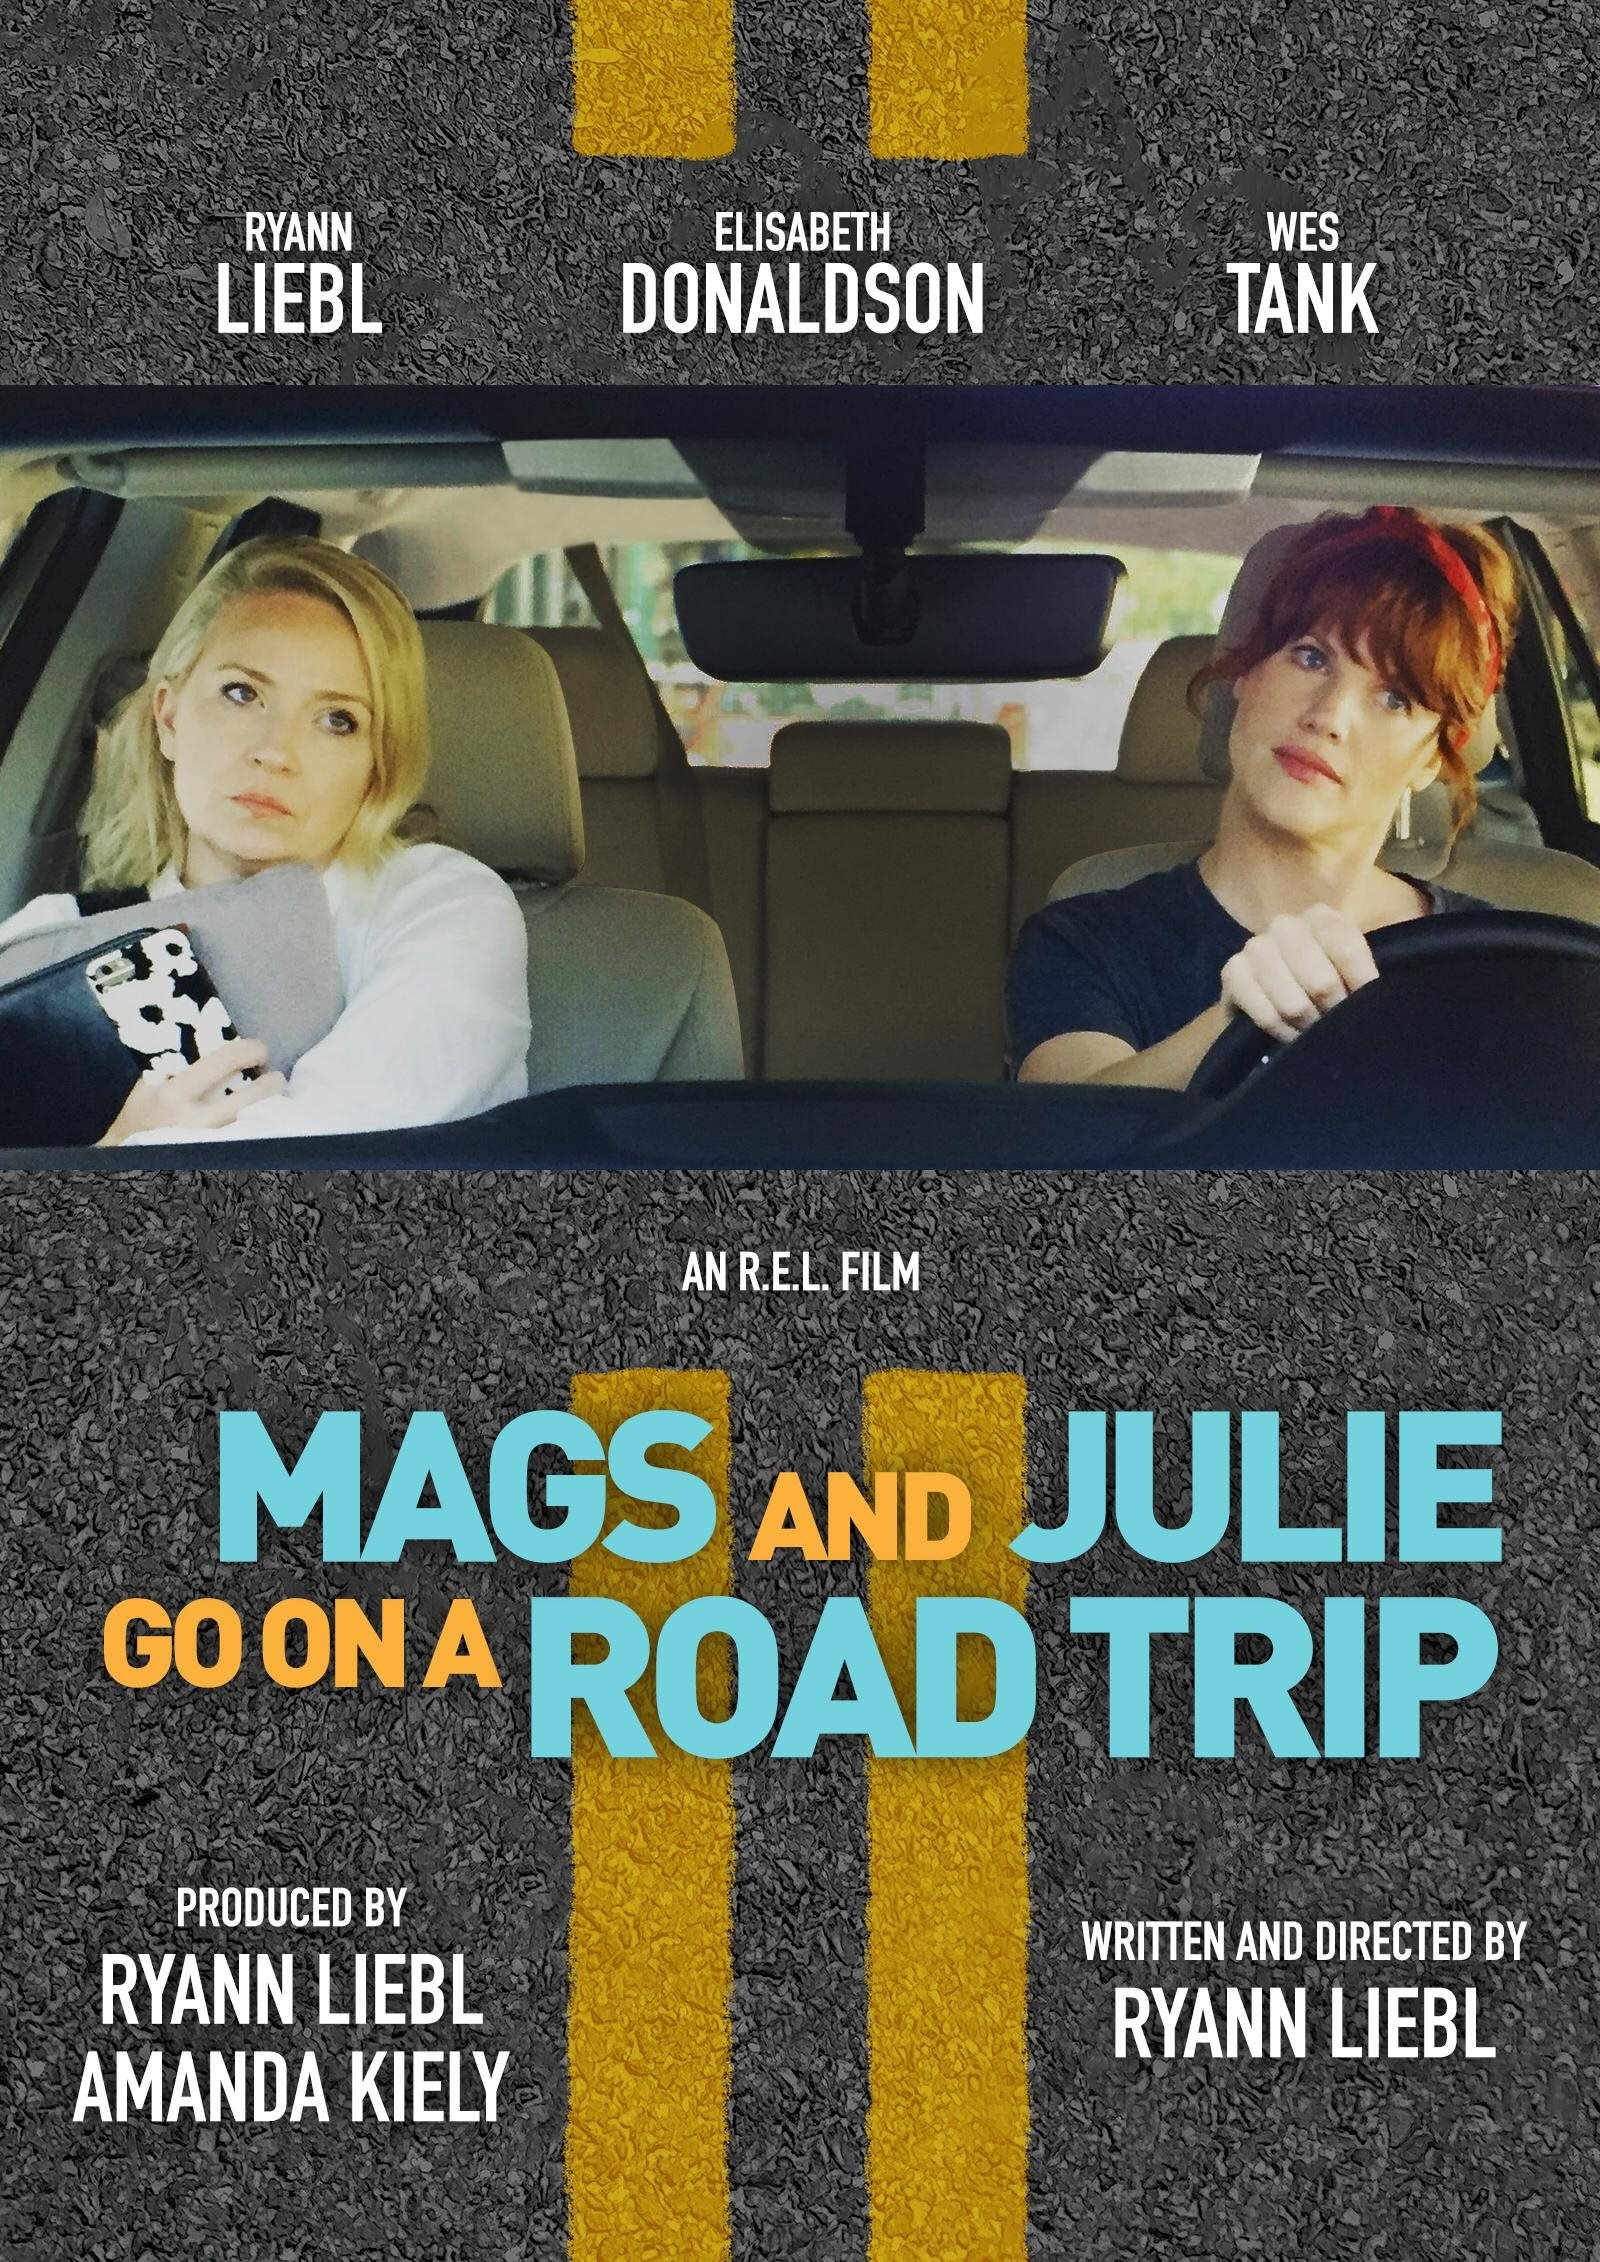 Mags and Julie Go on a Road Trip. poster image